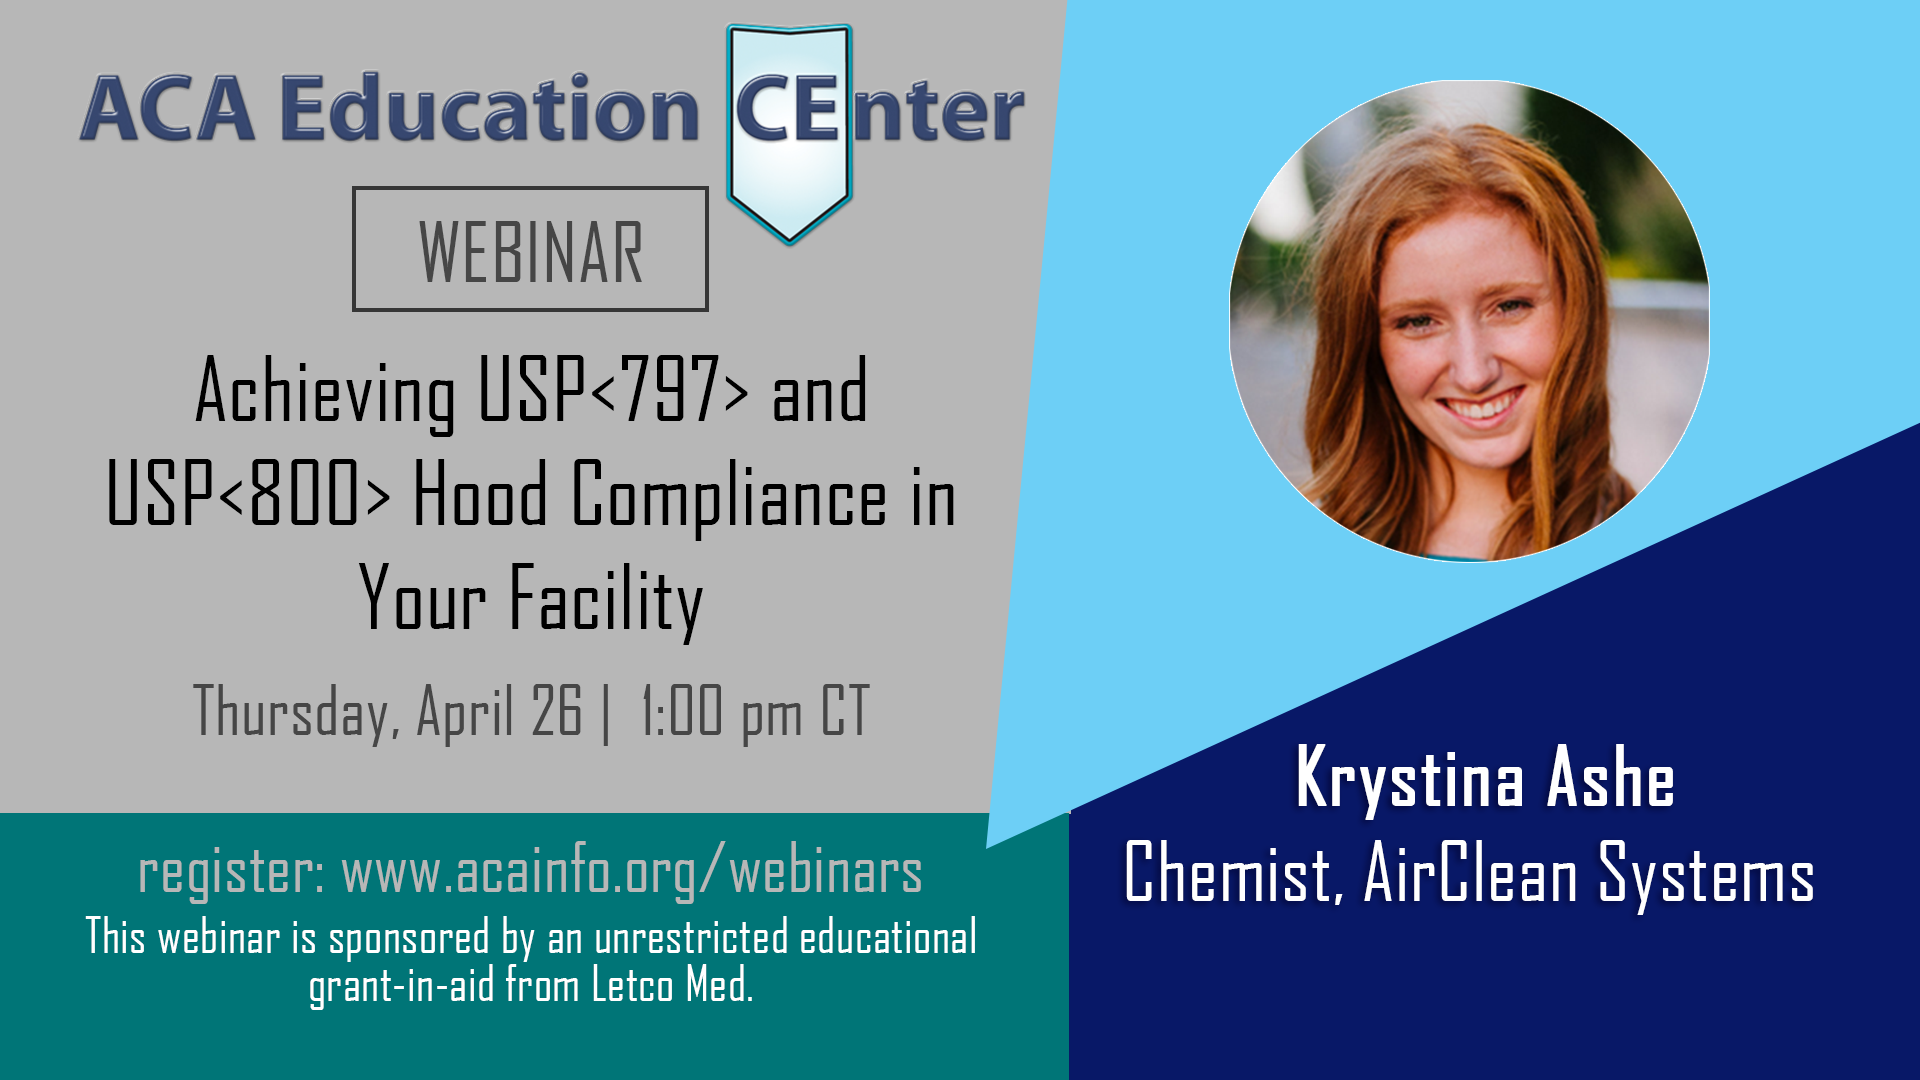 WEBINAR: Achieving USP<797> and USP<800> Hood Compliance in Your Facility